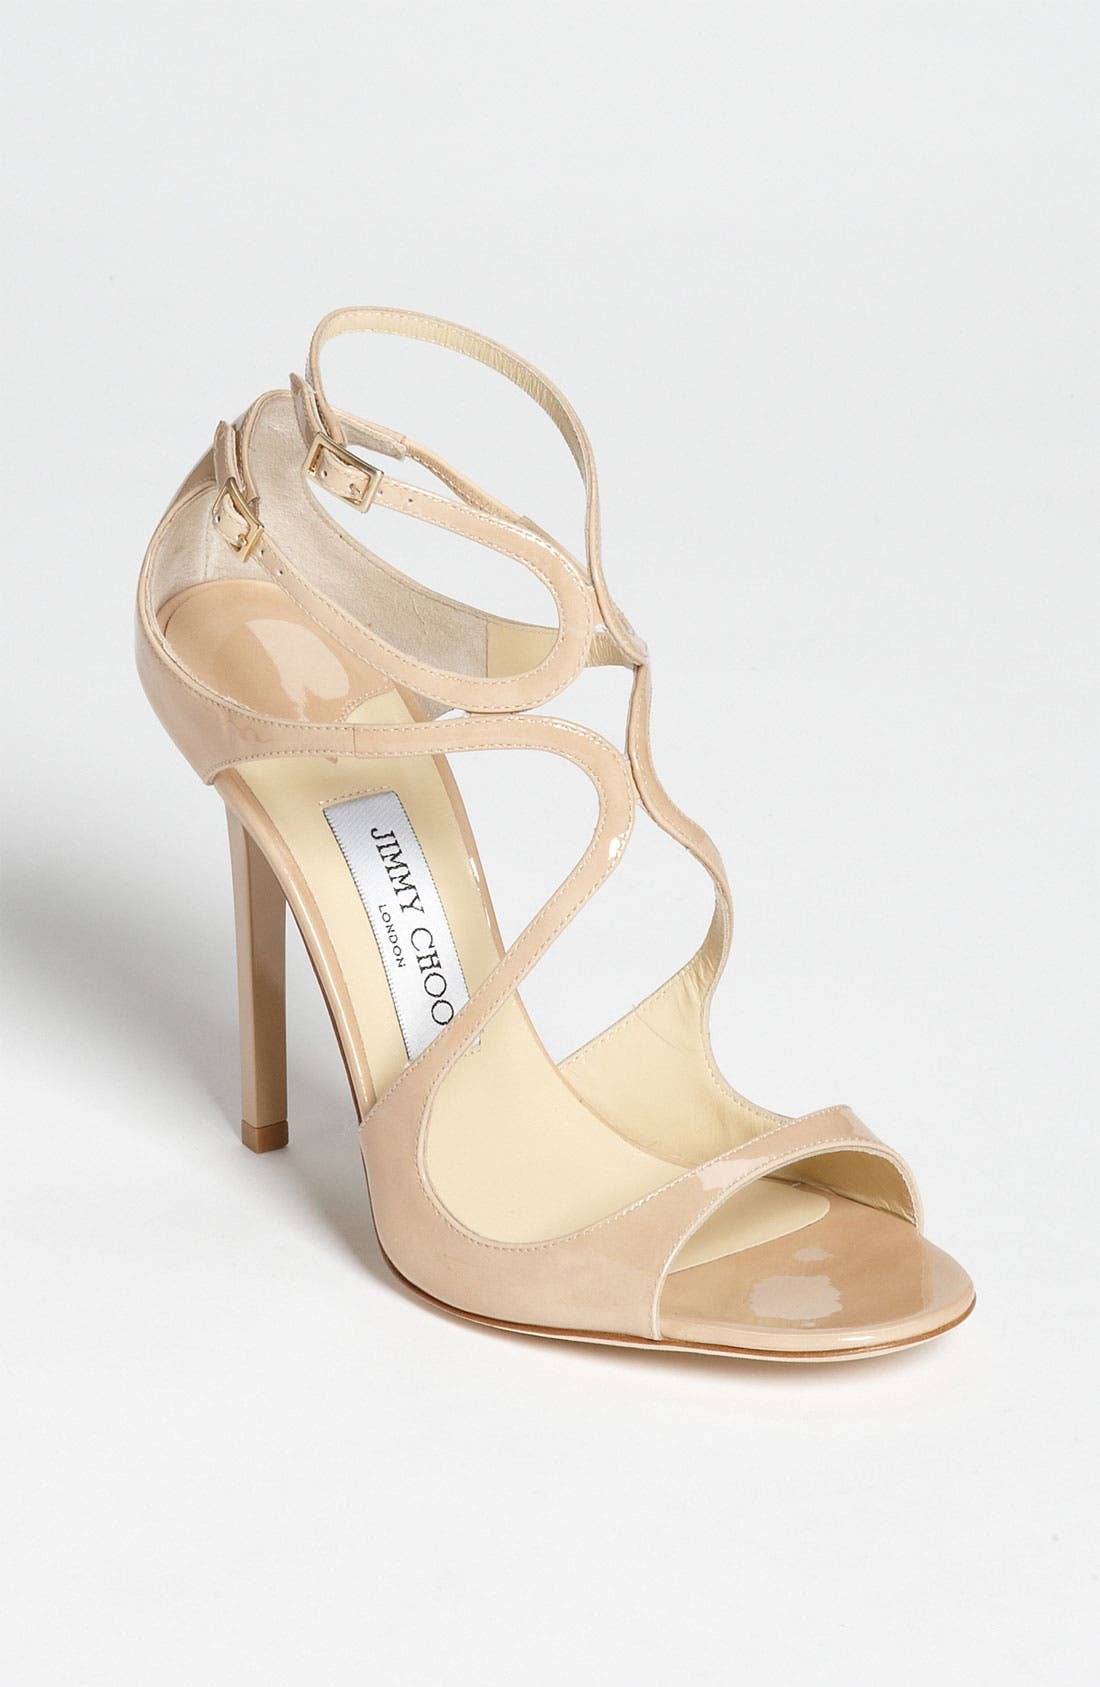 Alternate Image 1 Selected - Jimmy Choo 'Lance' Sandal